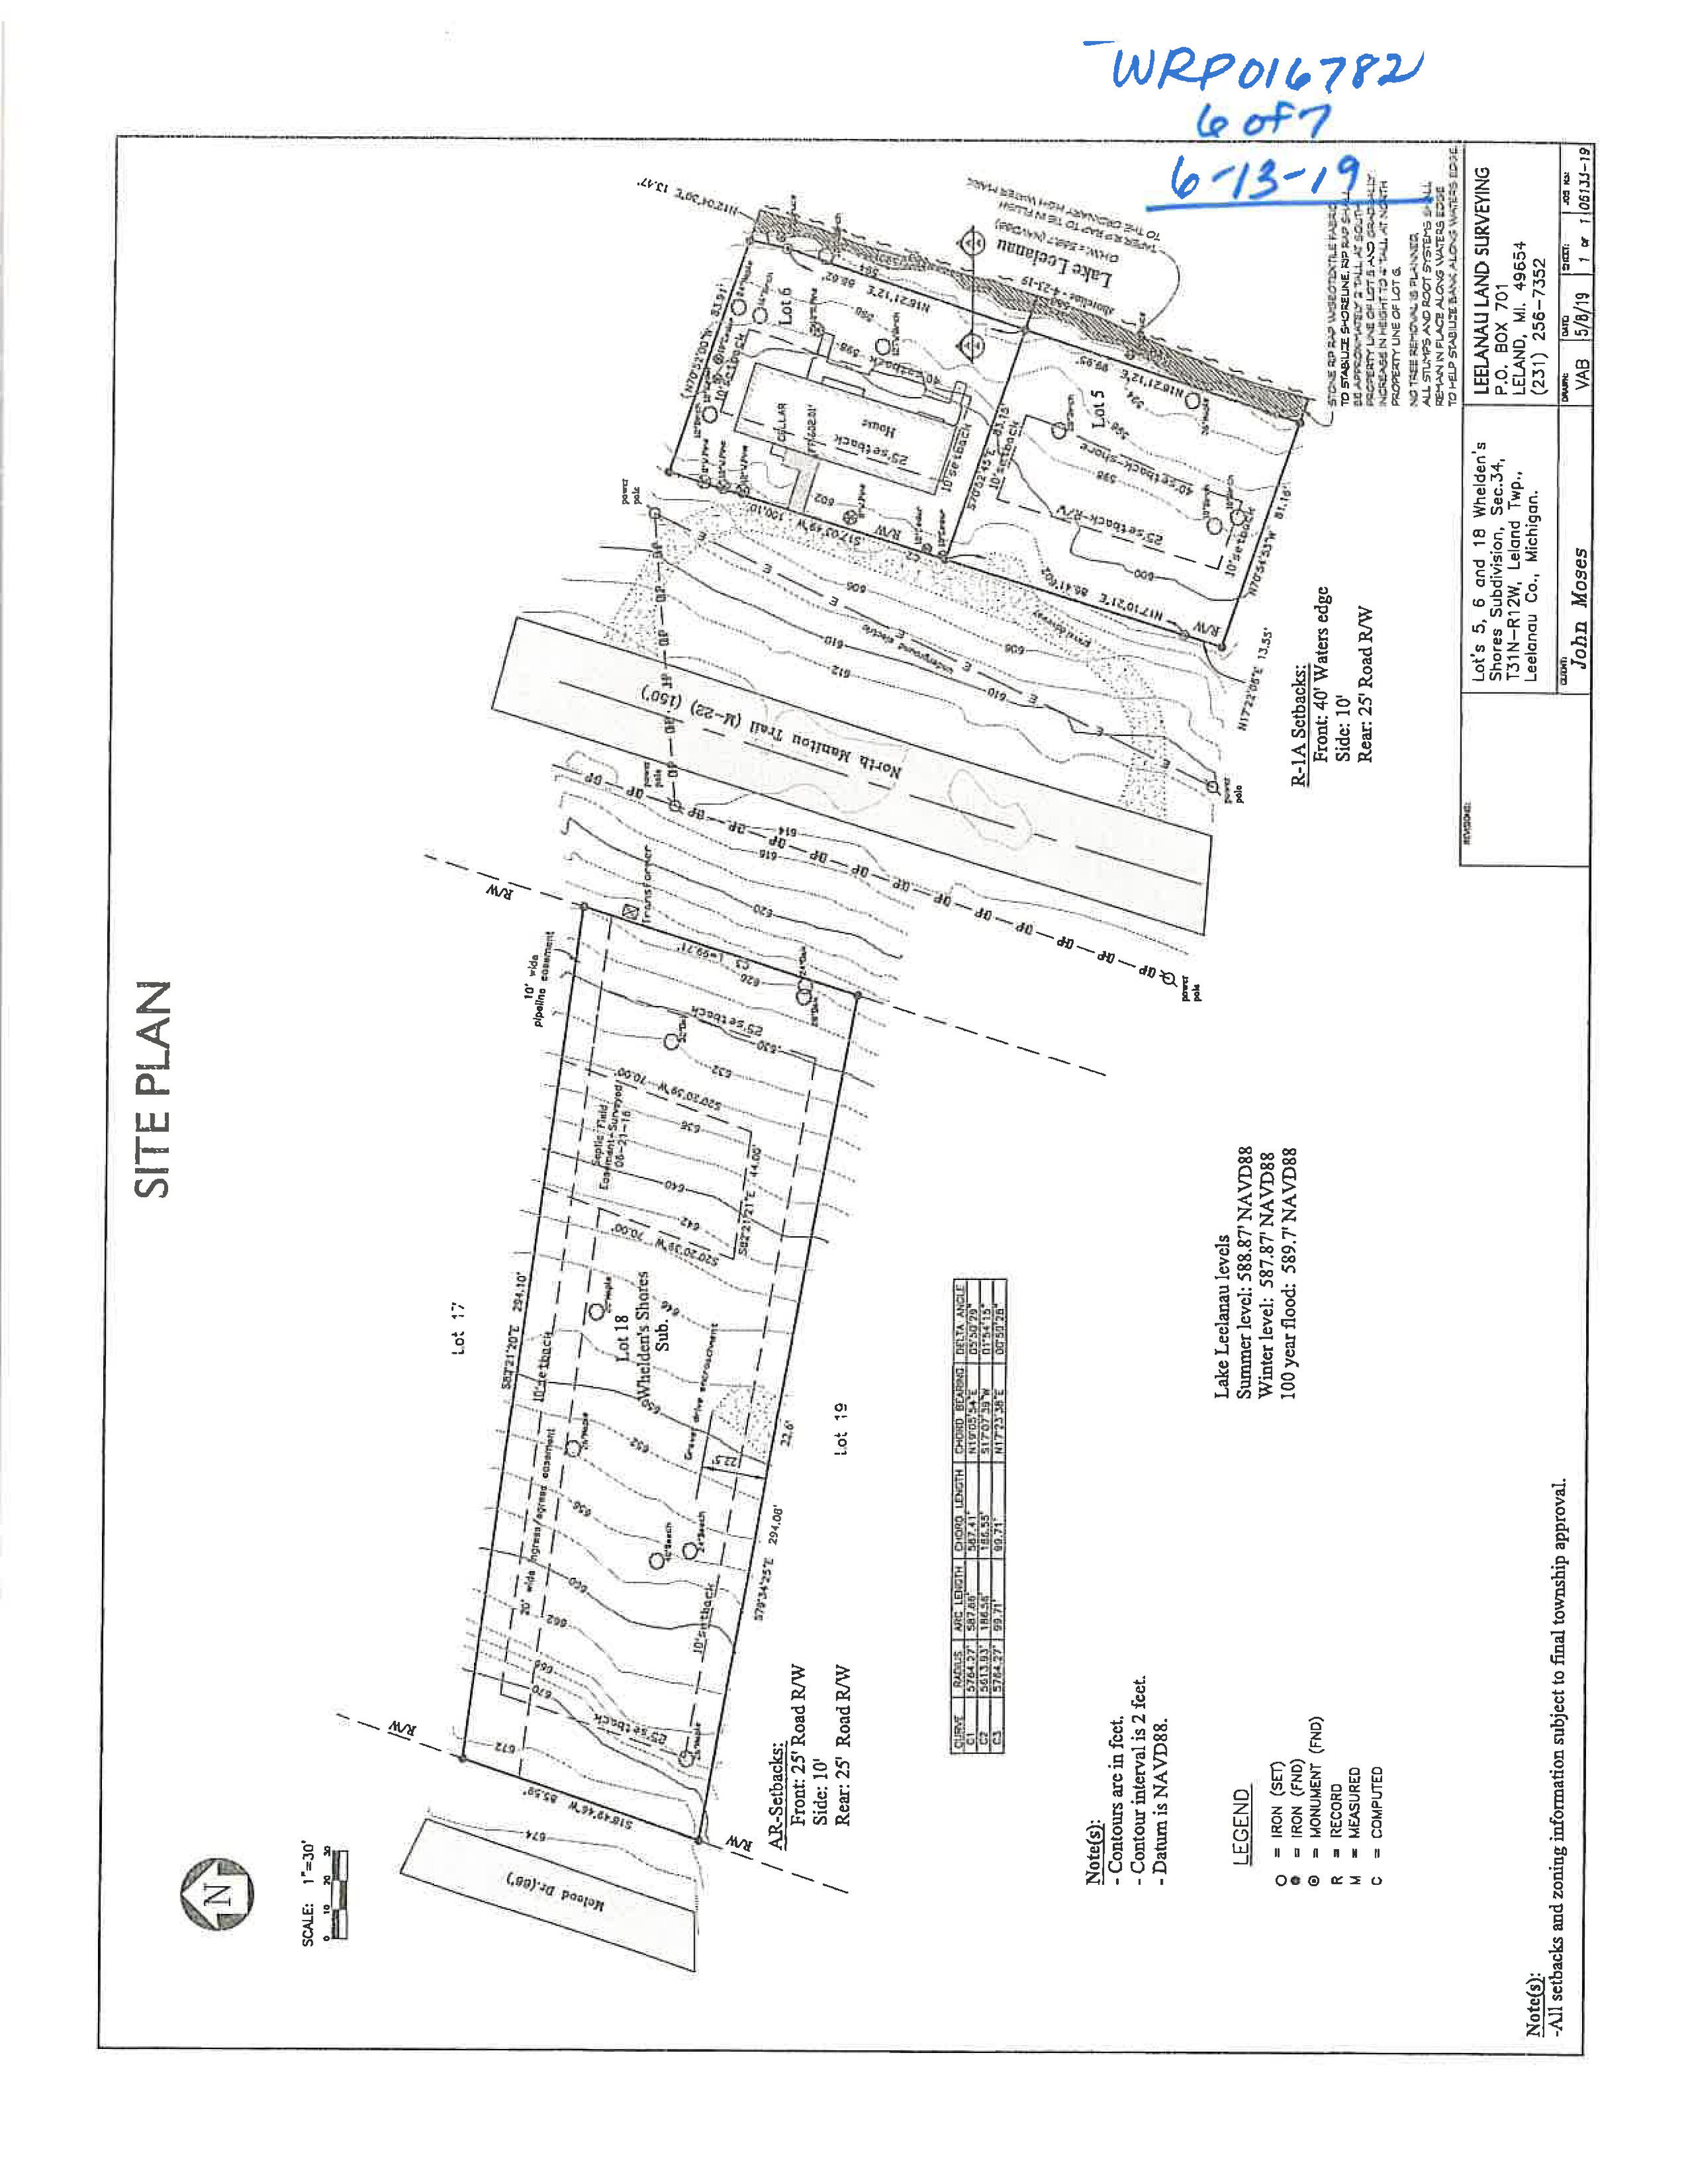 4388 N Manitou Trail, Leland - House Only Marketing Packet_Page_31.jpg